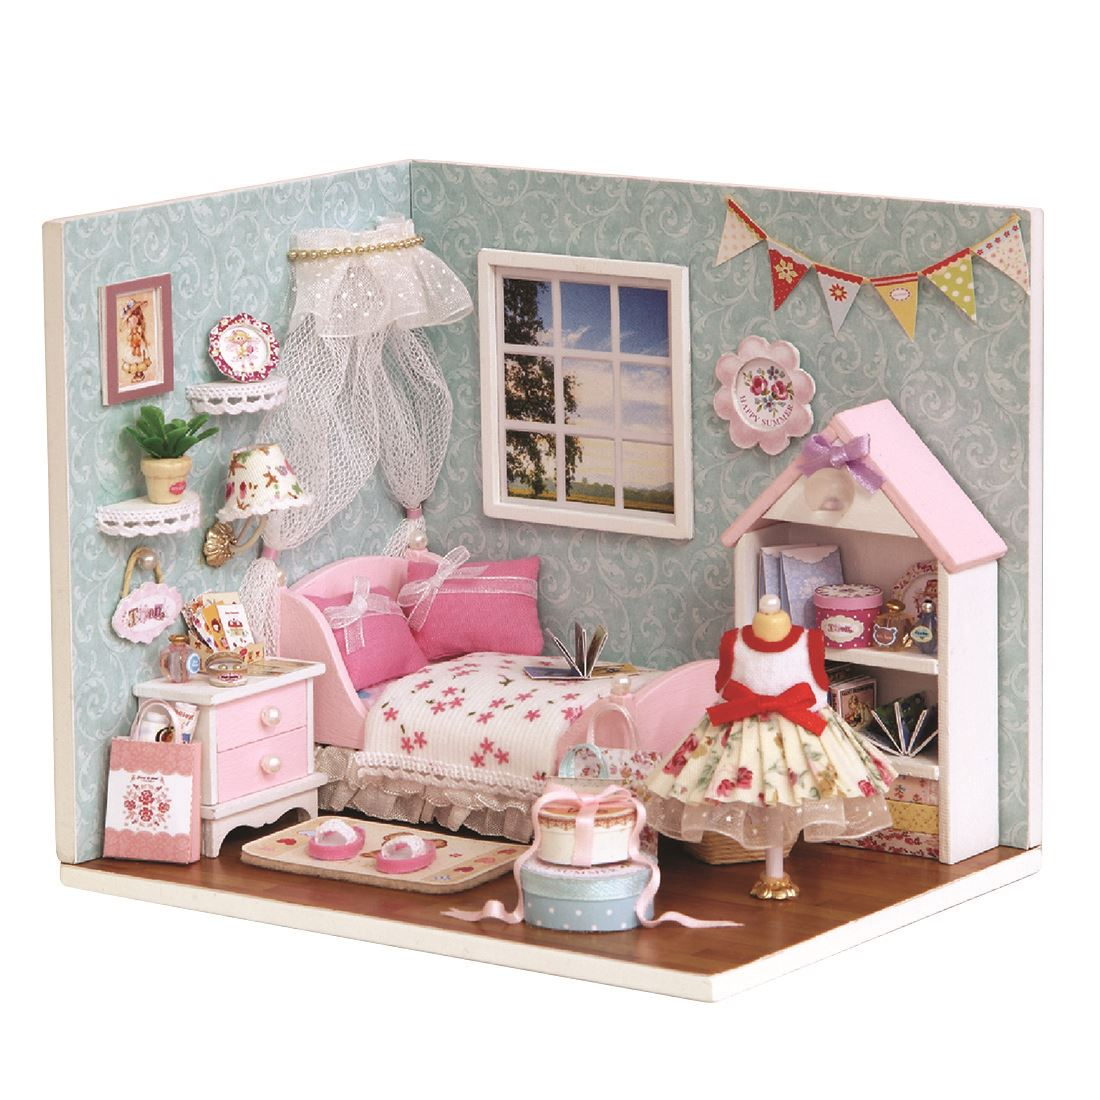 Interesting Dollhouse Happy Small World 3D Assembly DIY Household Creative House Kit Learning Toys For Children image